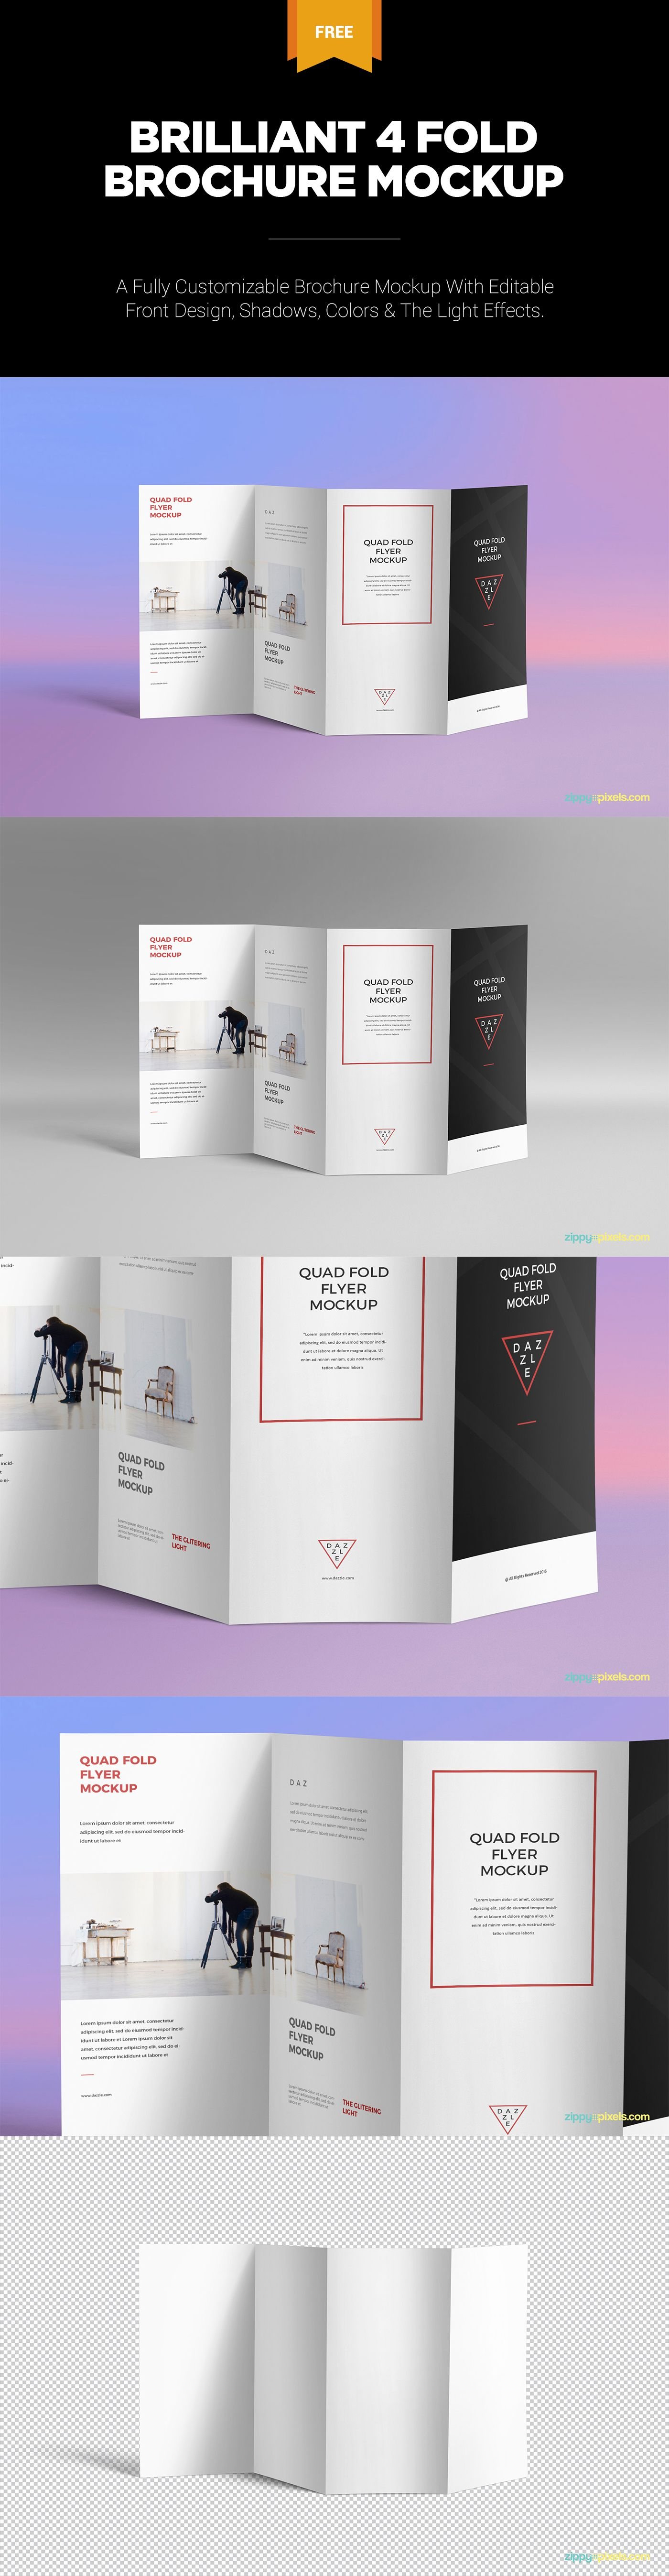 Check Out This Excellent Brochure Mockup Which Provides You Endless Customizations Free Freebie Flyer Psd Photoshop Quad Fold